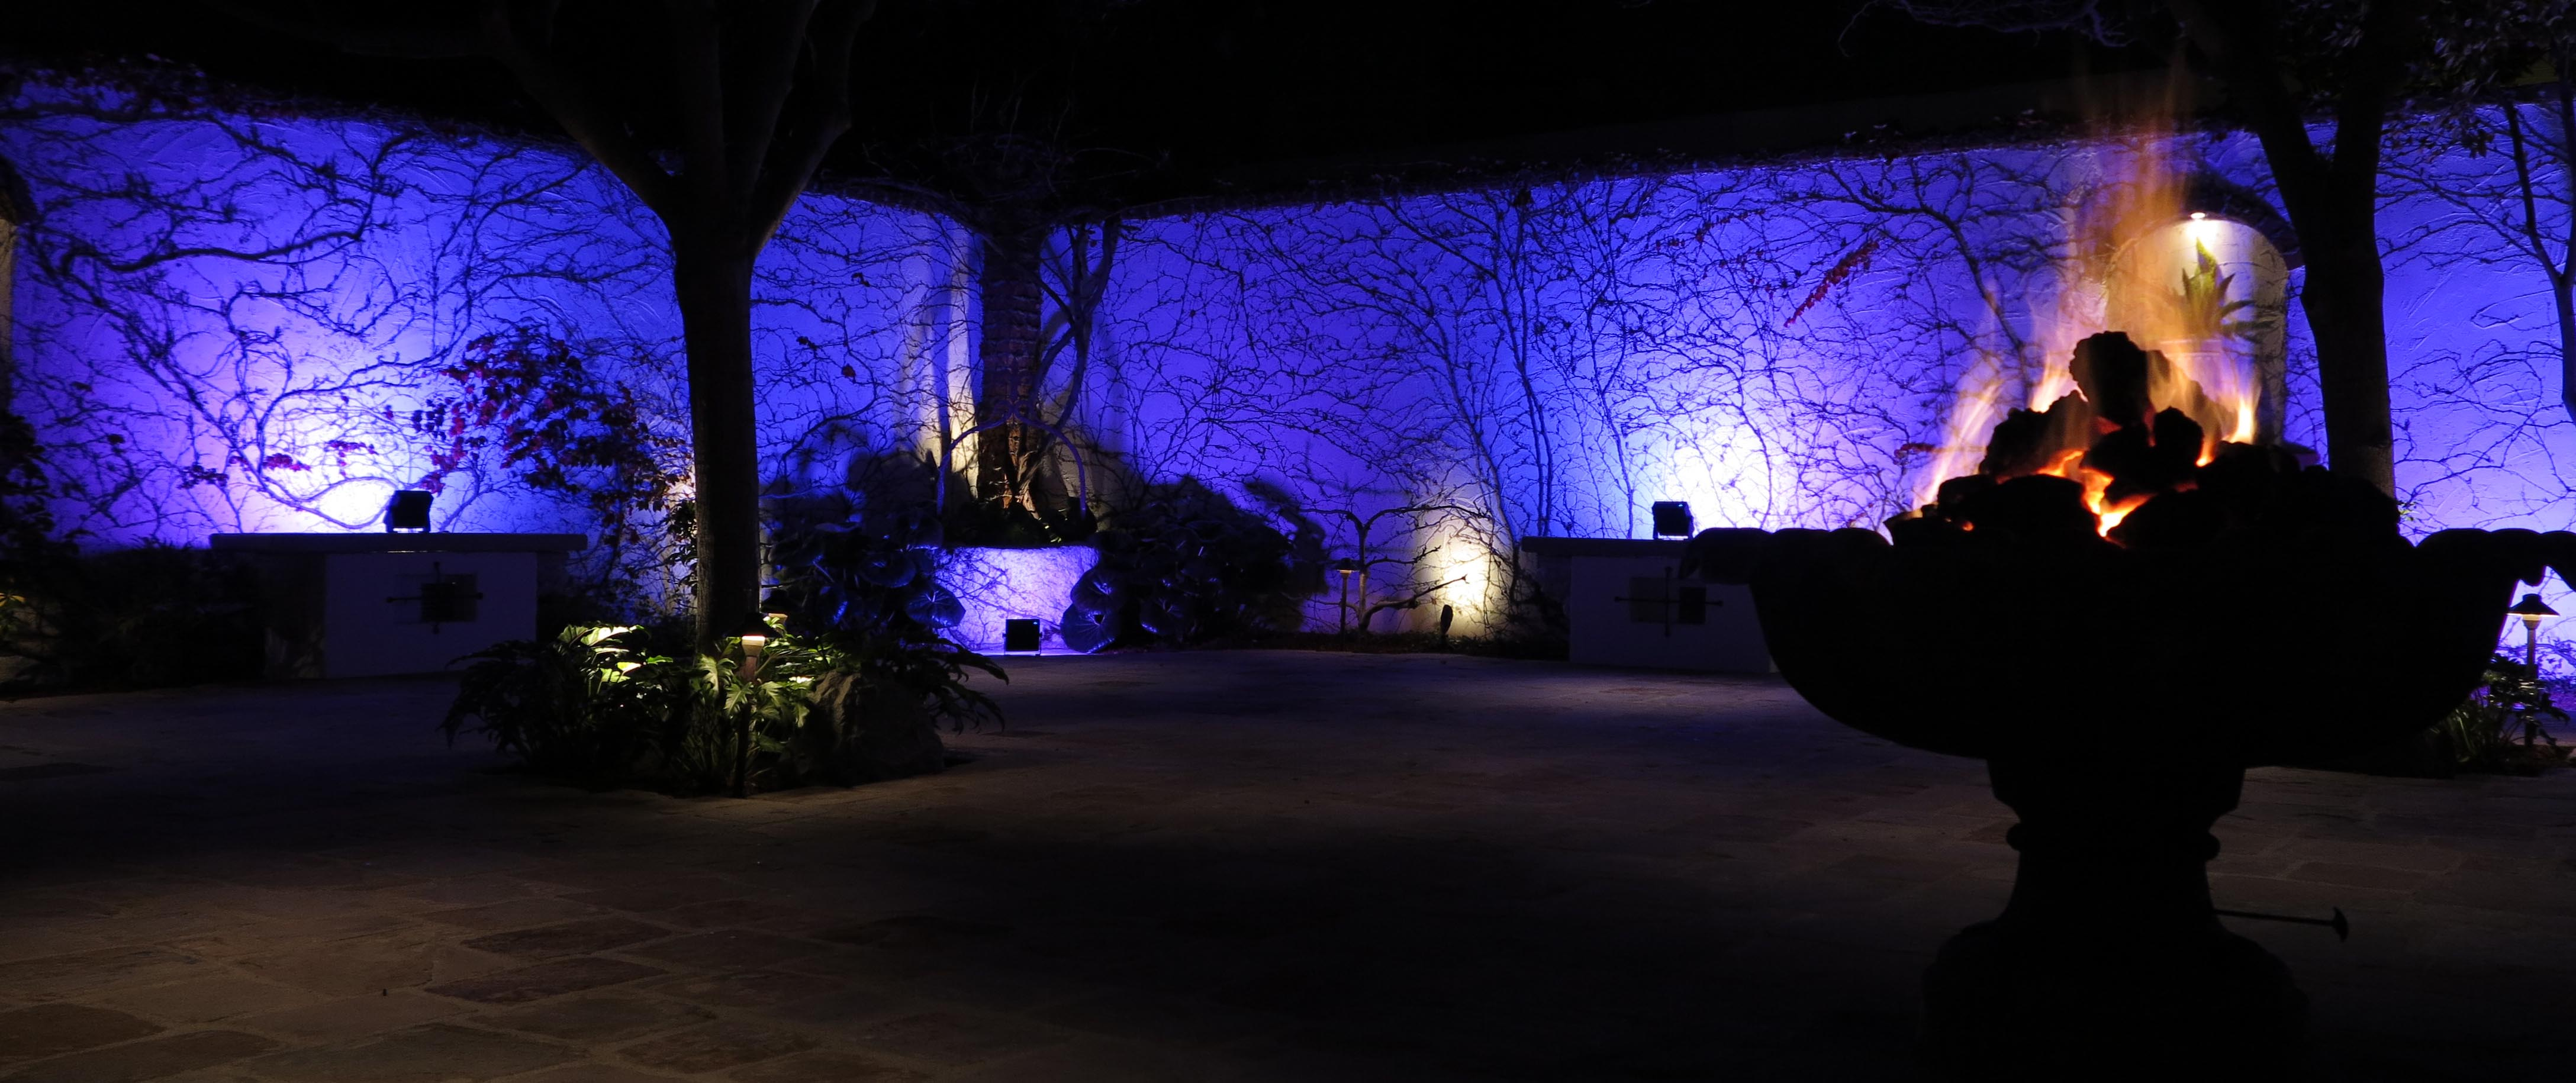 LED Wall Wash - The Villa in Purple